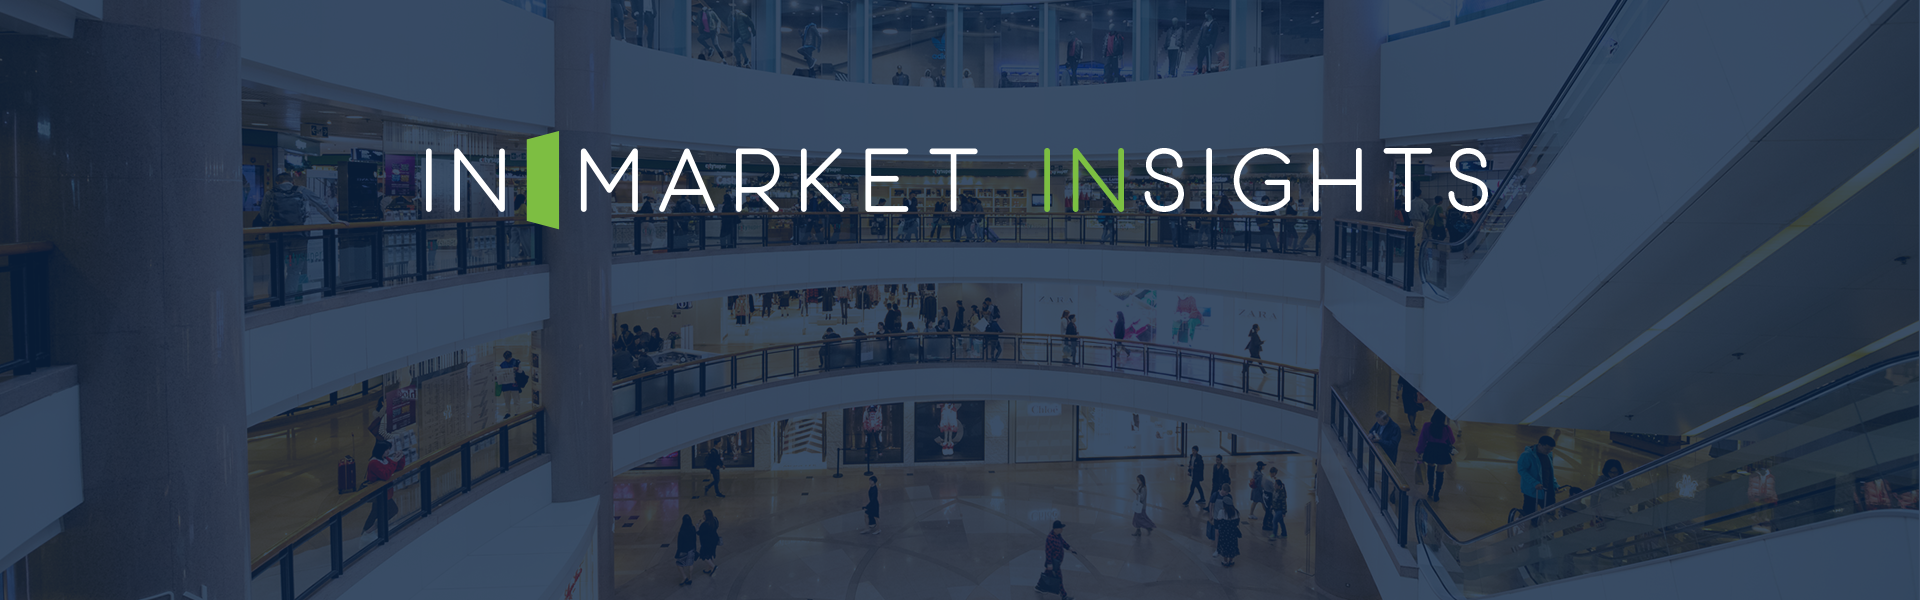 Inmarket Insights Header-mall